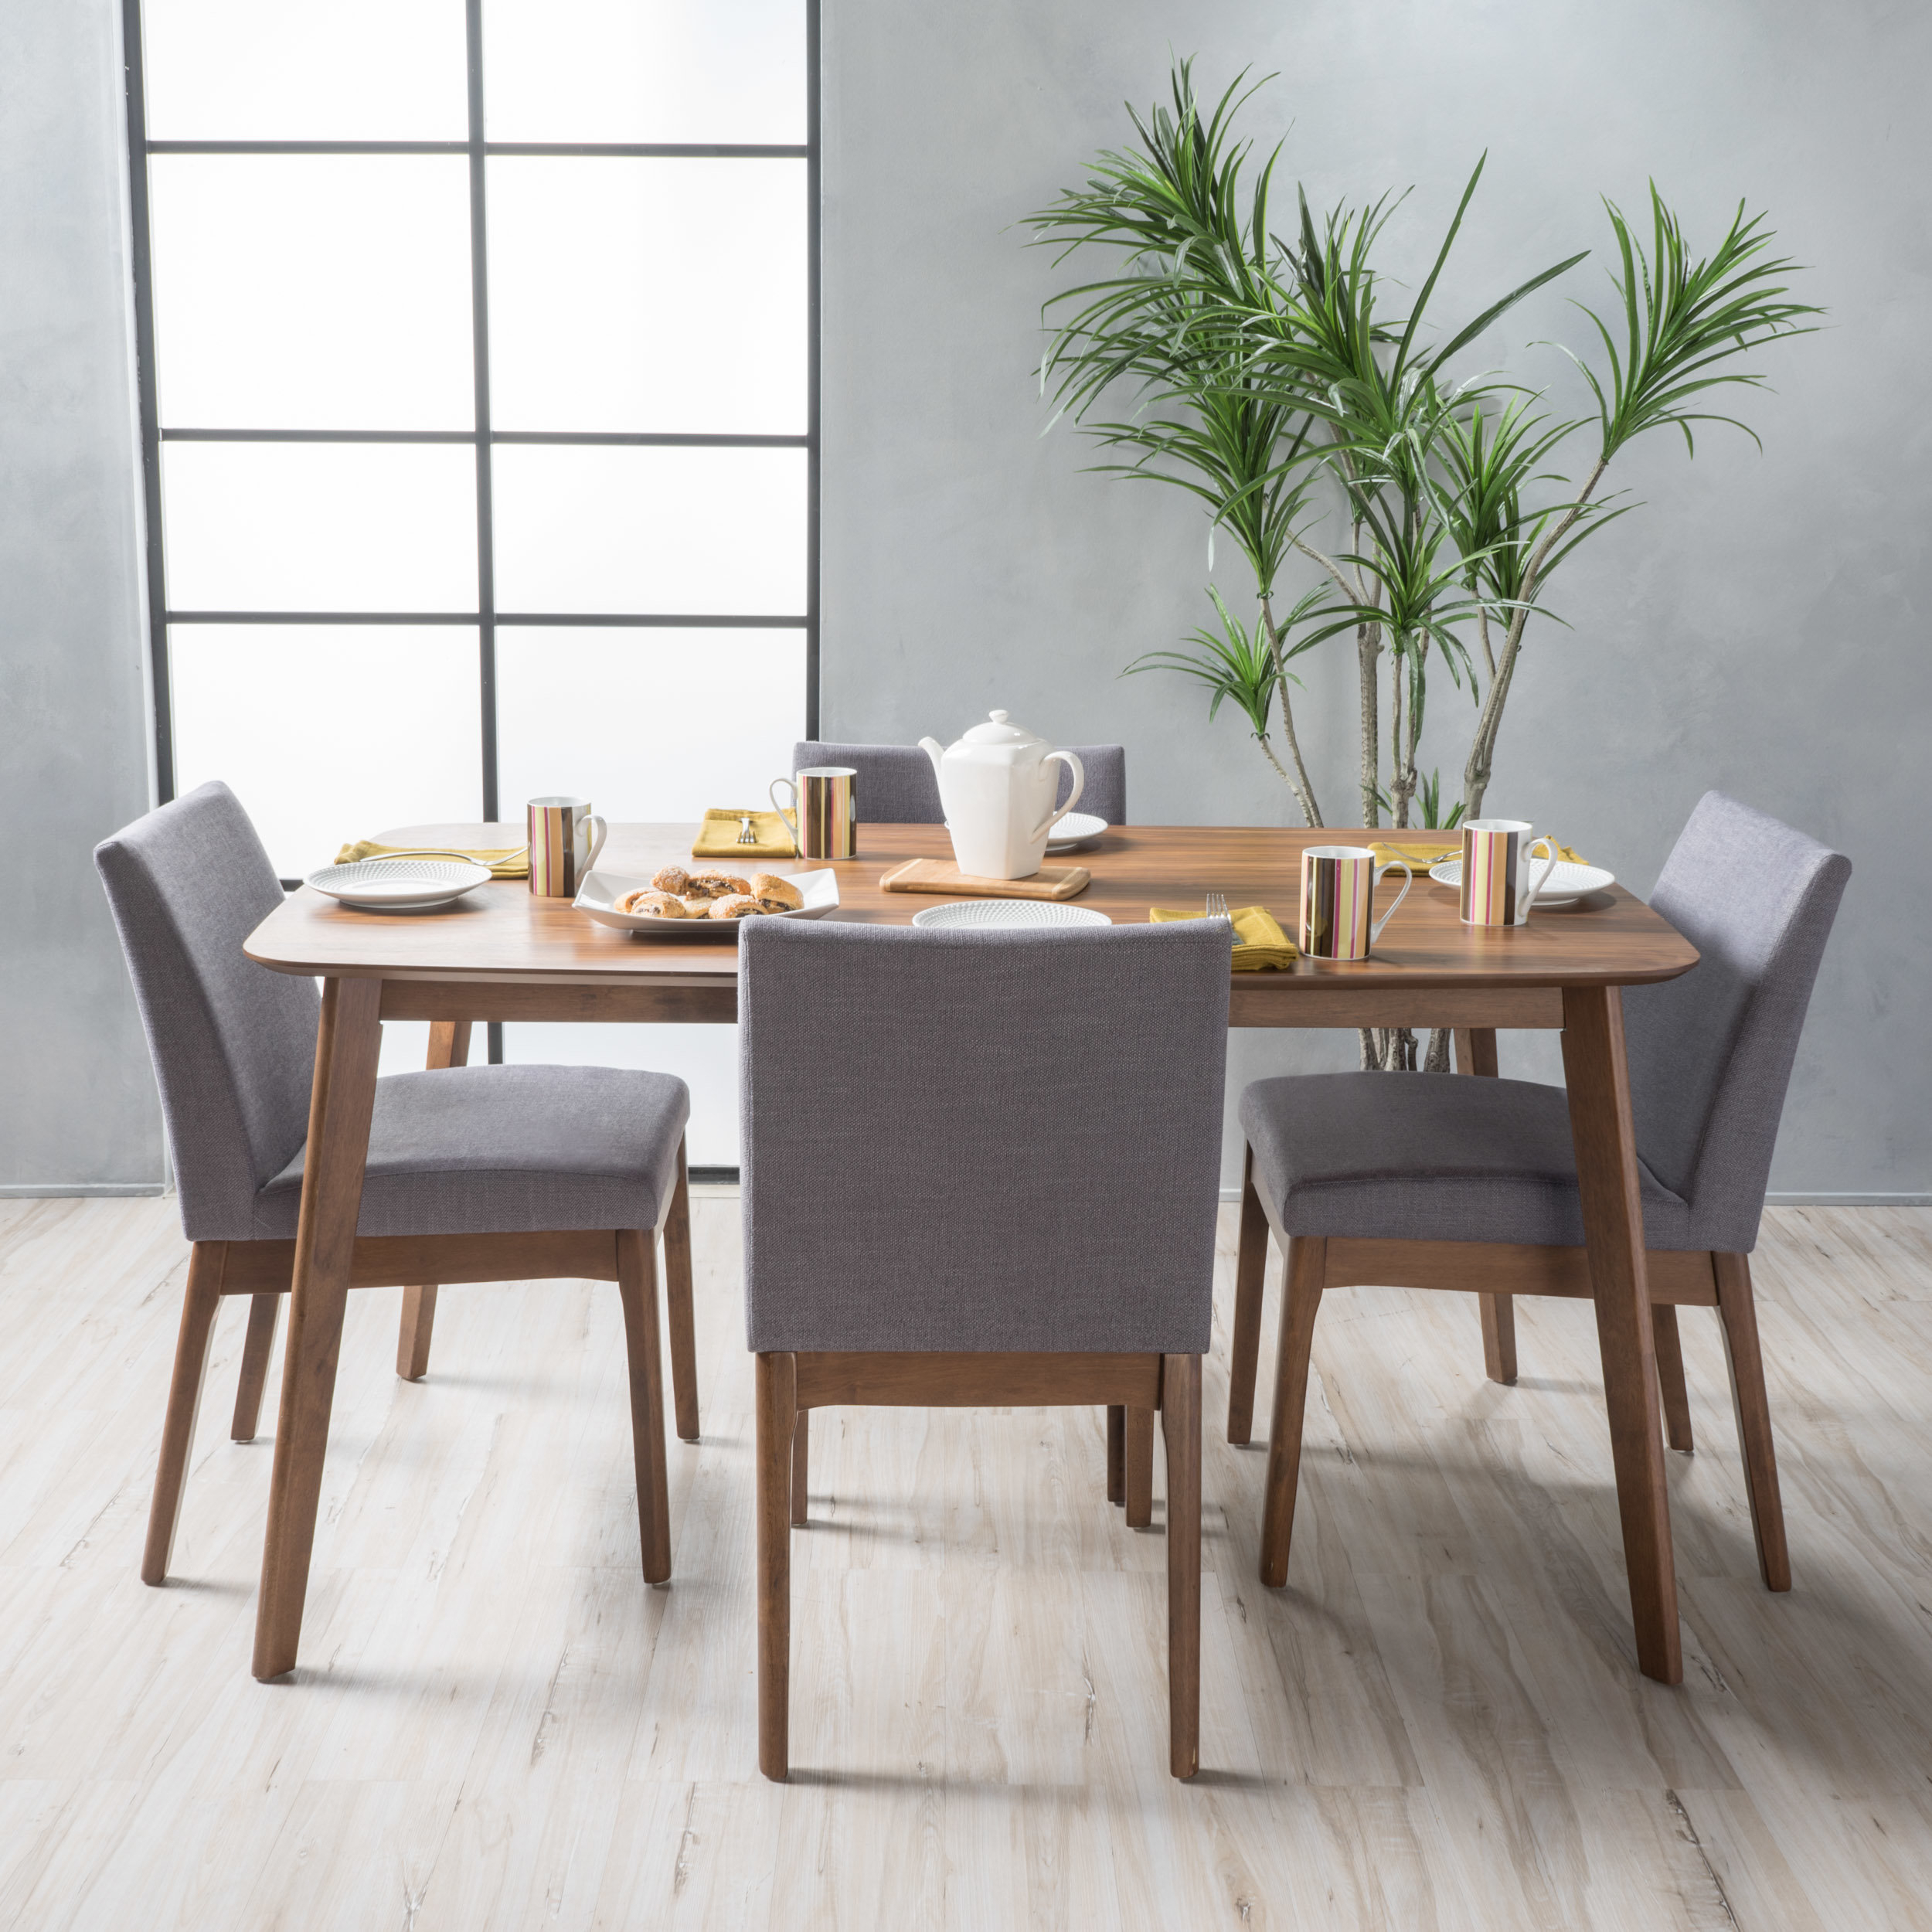 Wayfair Regarding Evellen 5 Piece Solid Wood Dining Sets (Set Of 5) (#17 of 20)